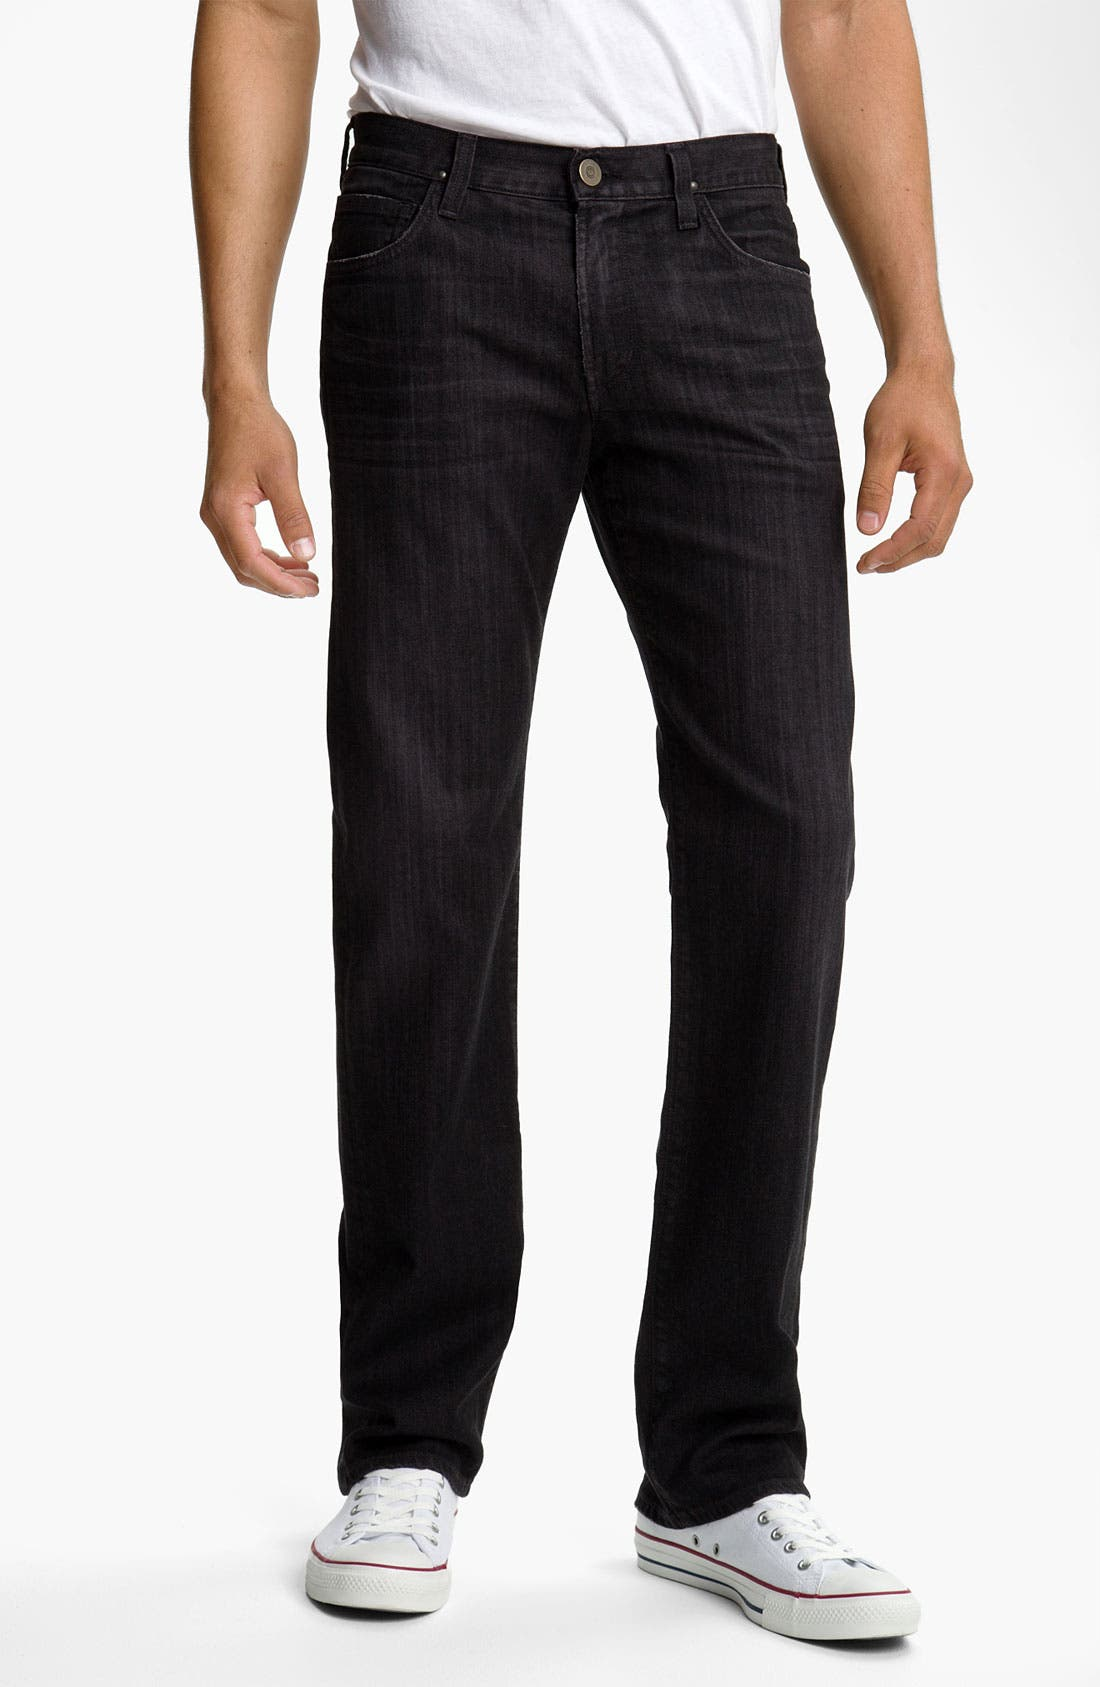 Alternate Image 1 Selected - Citizens of Humanity 'Sid' Straight Leg Jeans (Billie)